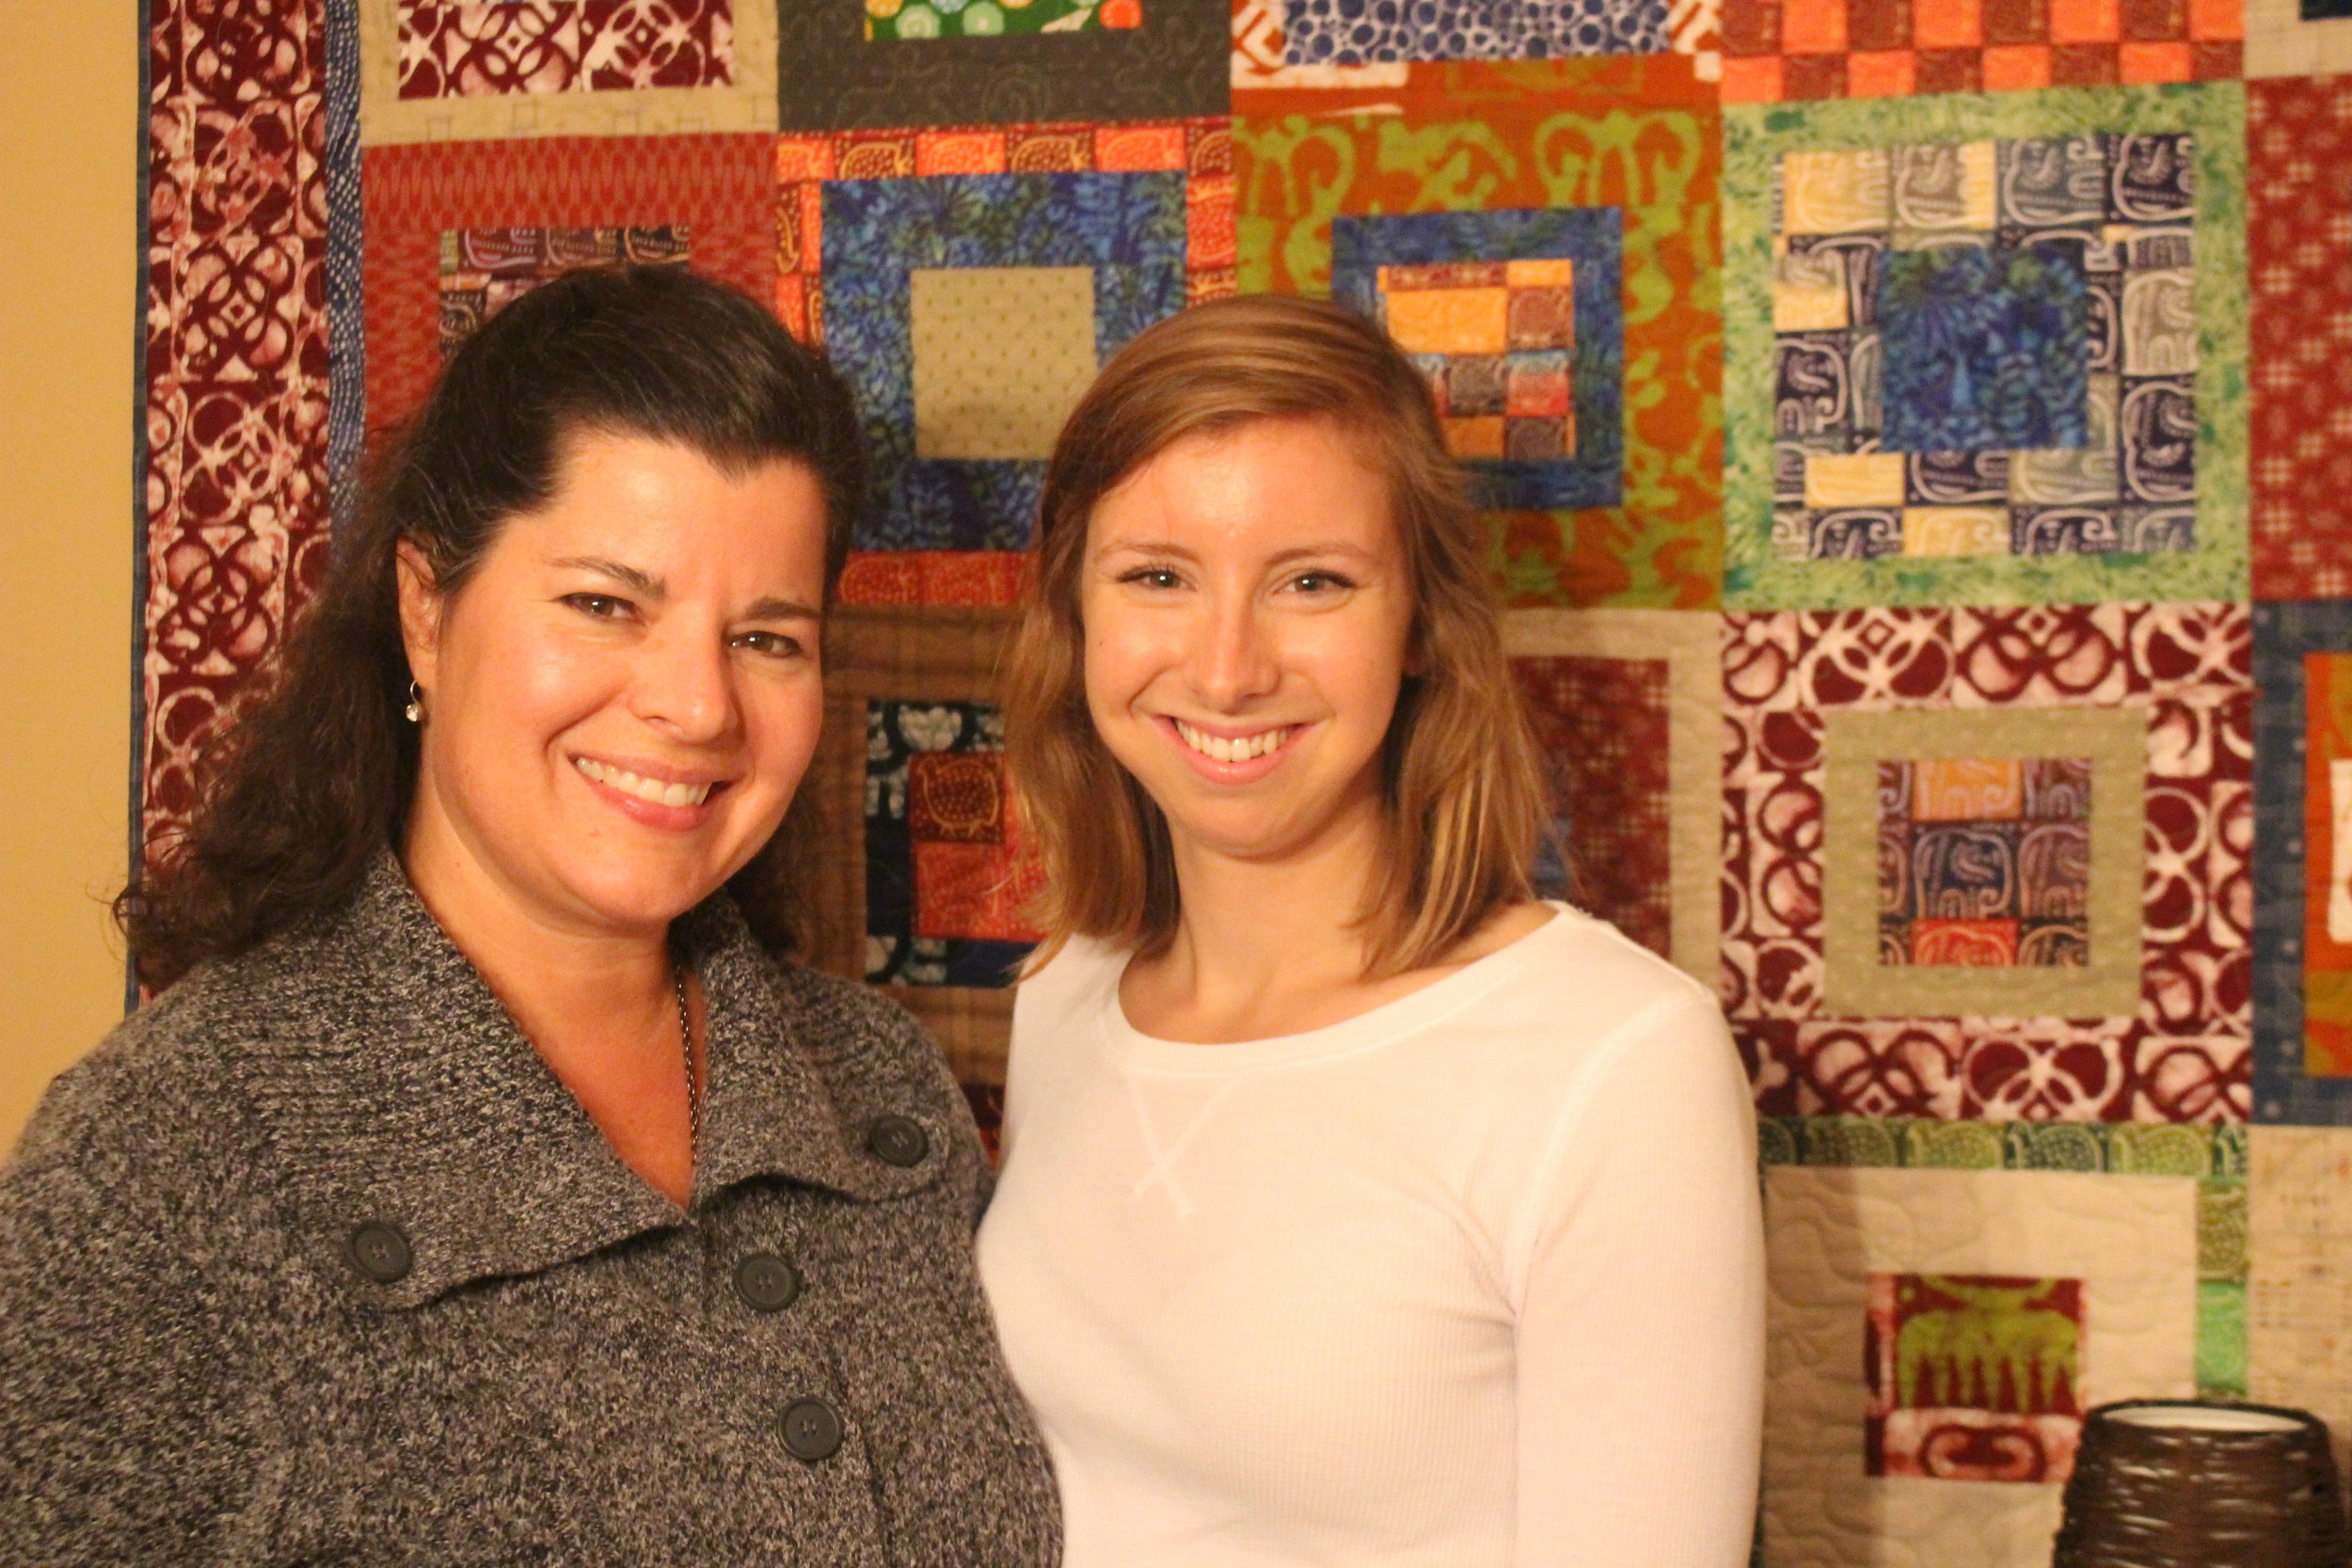 Shelley Green (Founder of MWAHFE)with Brittany Campbell